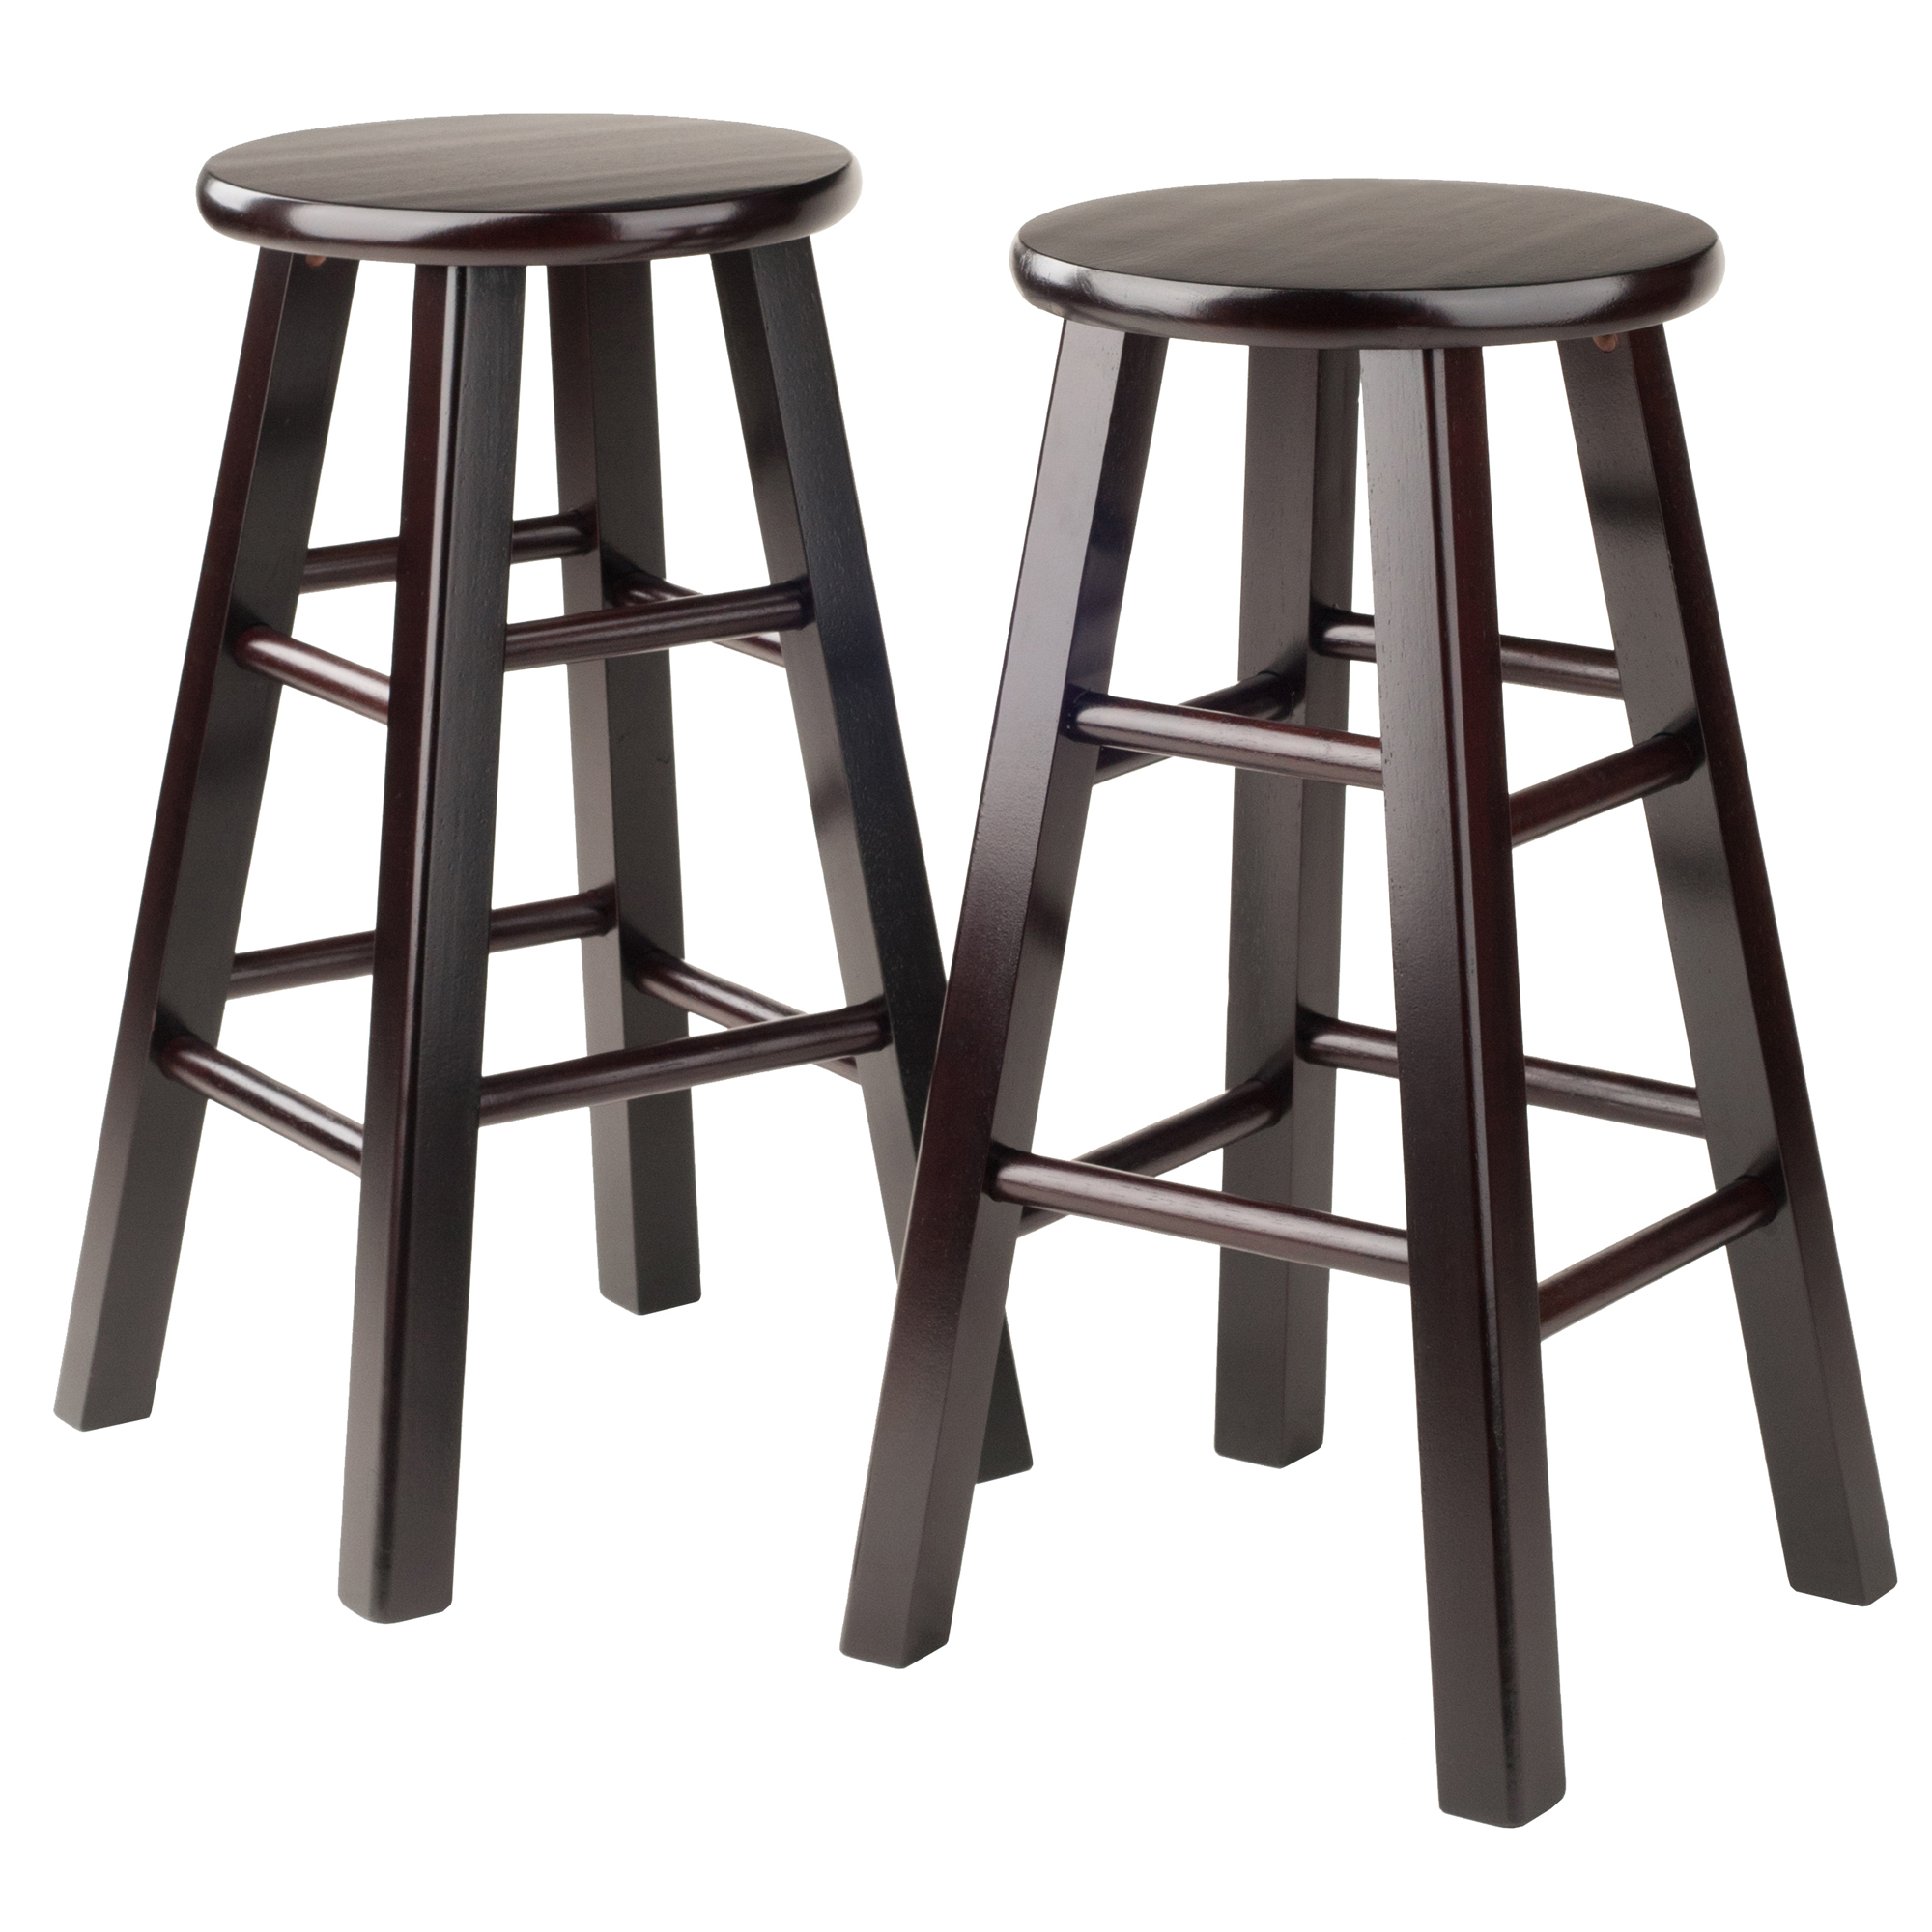 Winsome Wood Pacey 24 Counter Stools Set Of 2 Multiple Colors